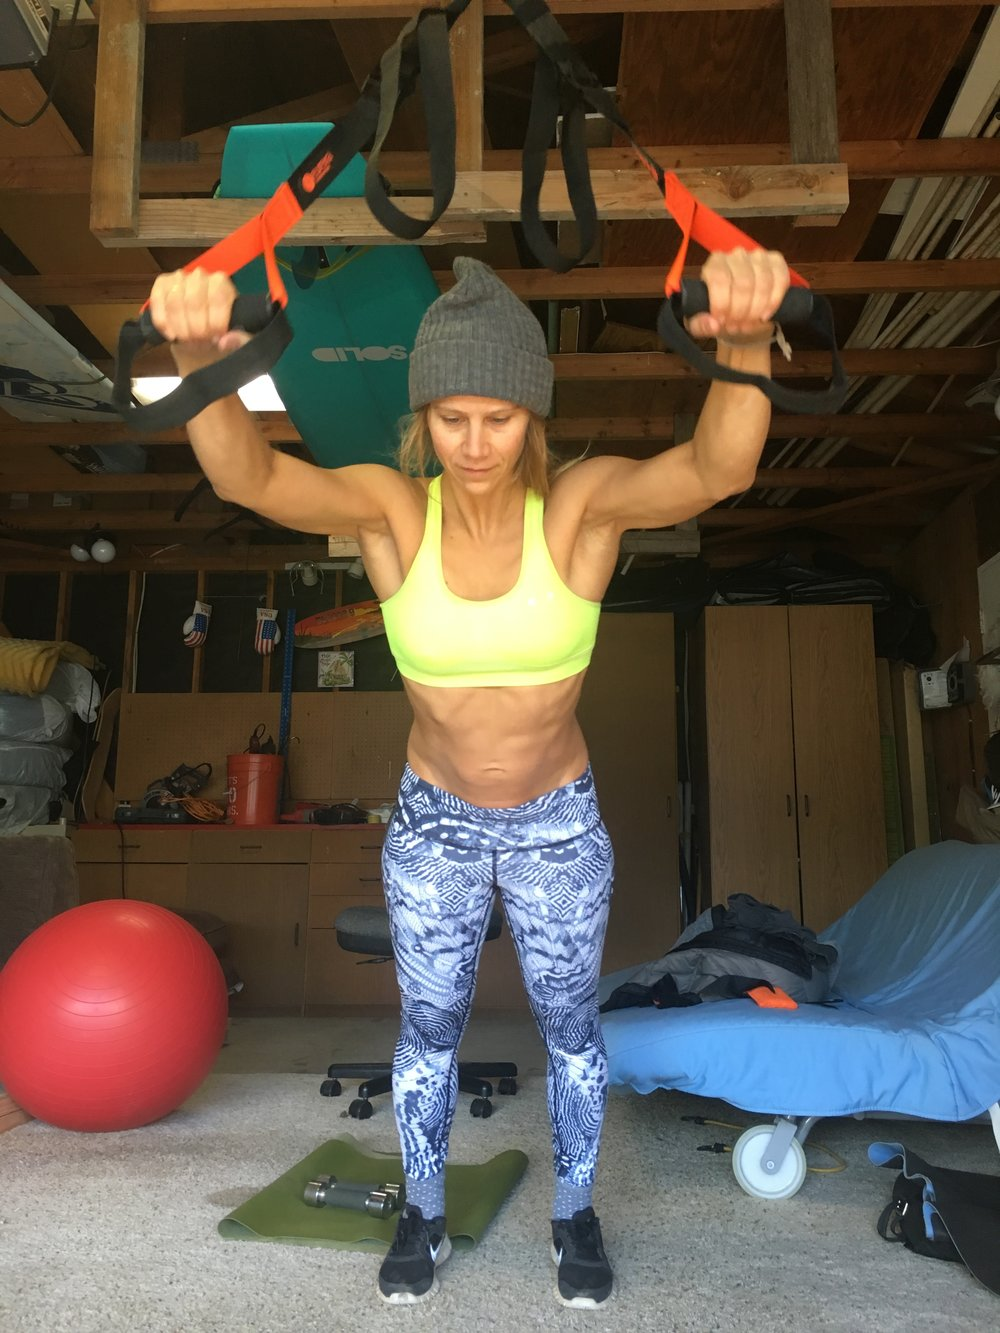 KJERSTI BUAAS GARAGE WORKOUT